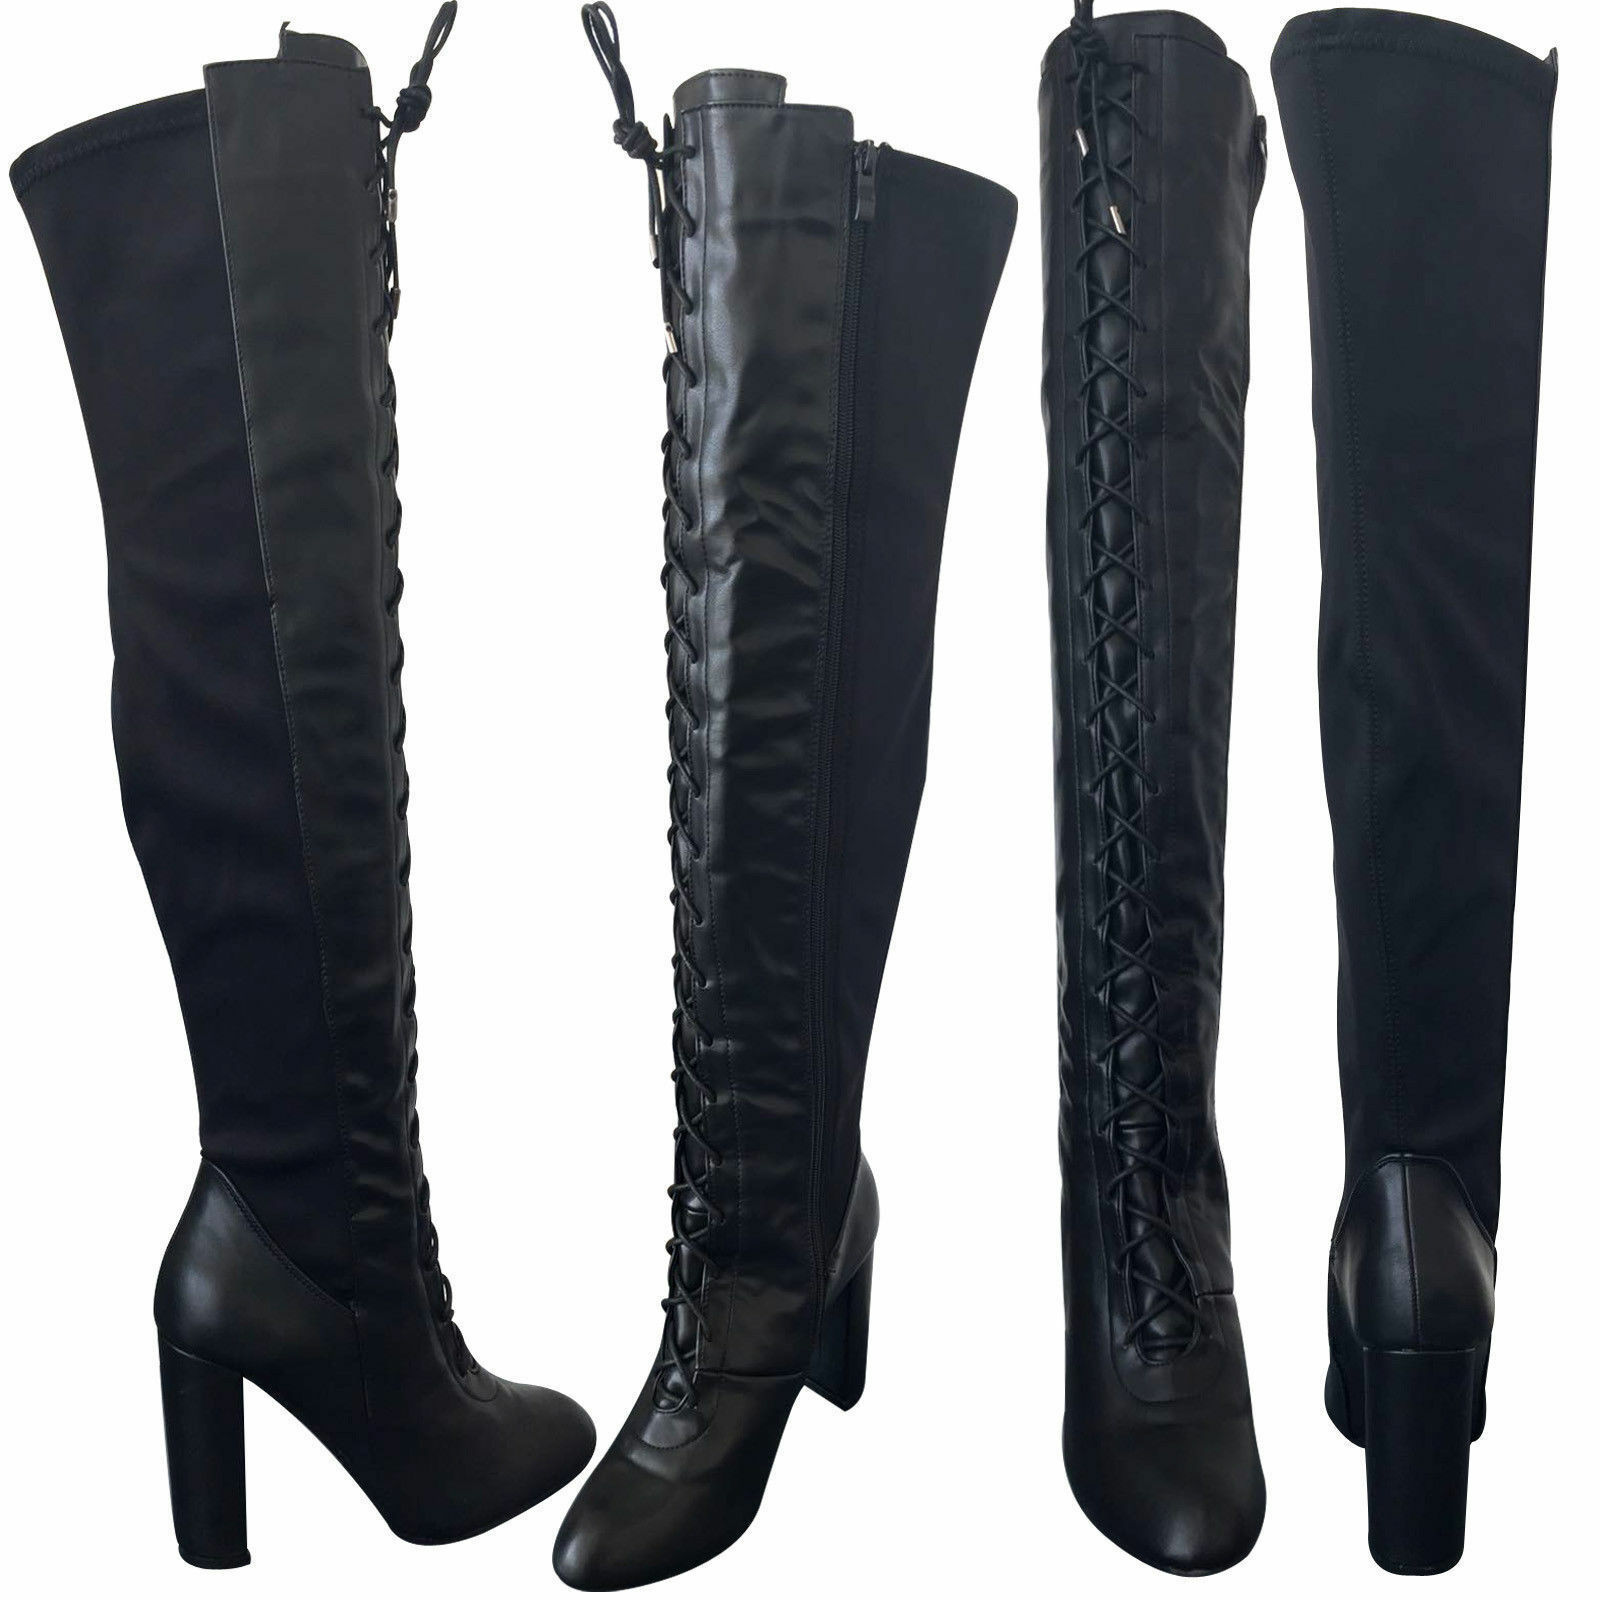 WOMENS LADIES SEXY LACE UP THIGH HIGH OVER THE SIZ KNEE BLOCK HEEL BOOTS SIZ THE 3-8 lot 729c50